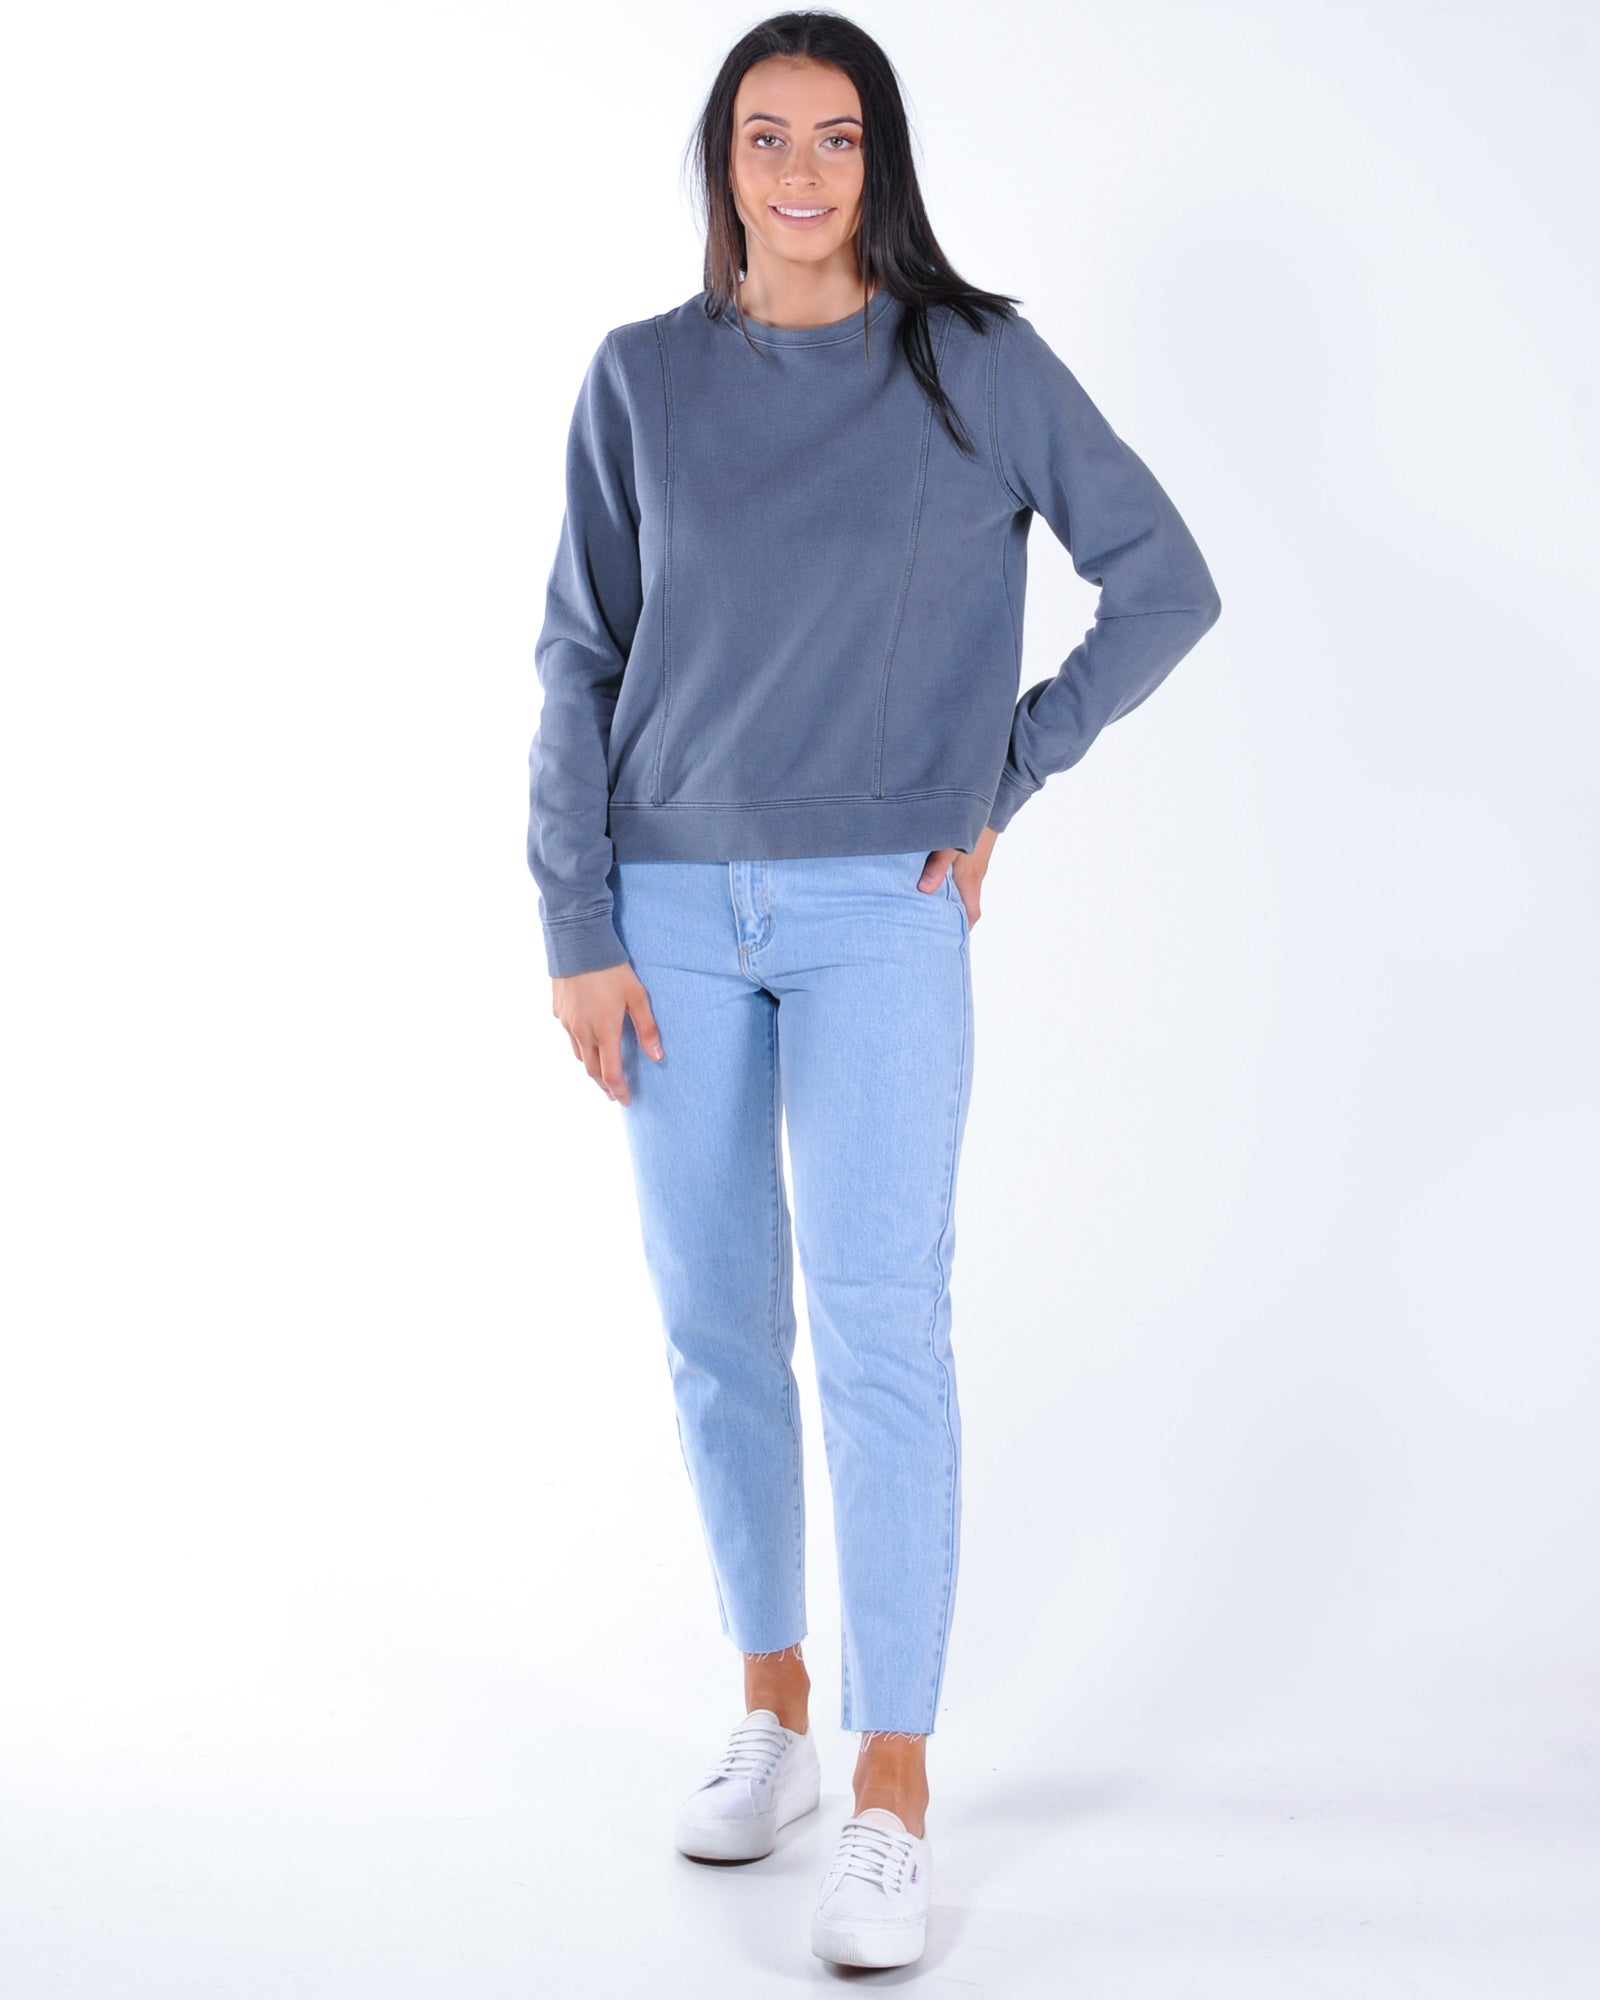 All About Eve Arnhem Panelled Crew Sweat - Charcoal